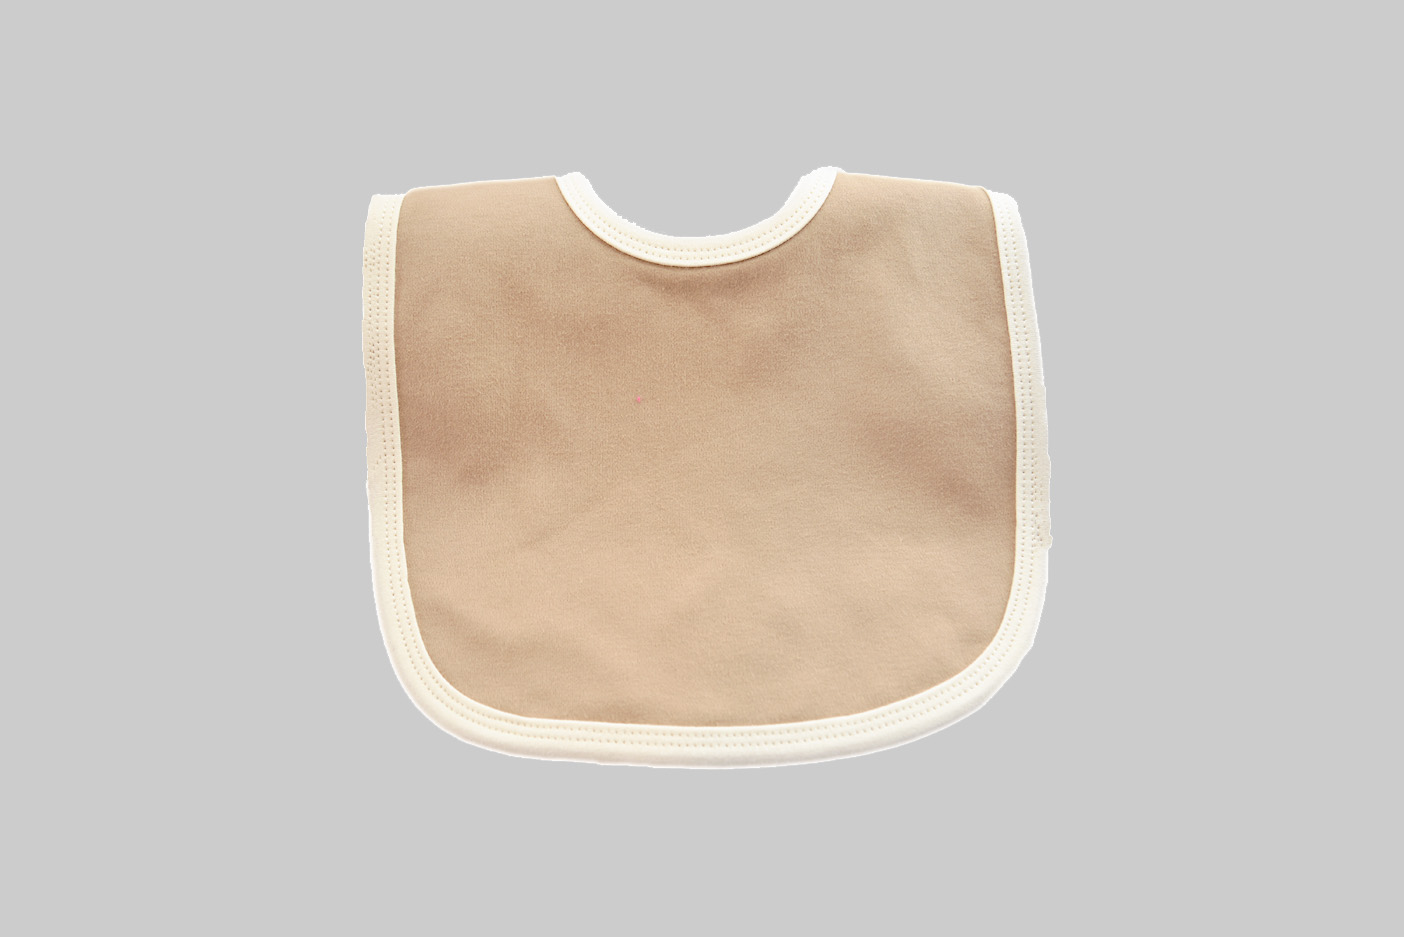 Cream with Camel color baby bibs